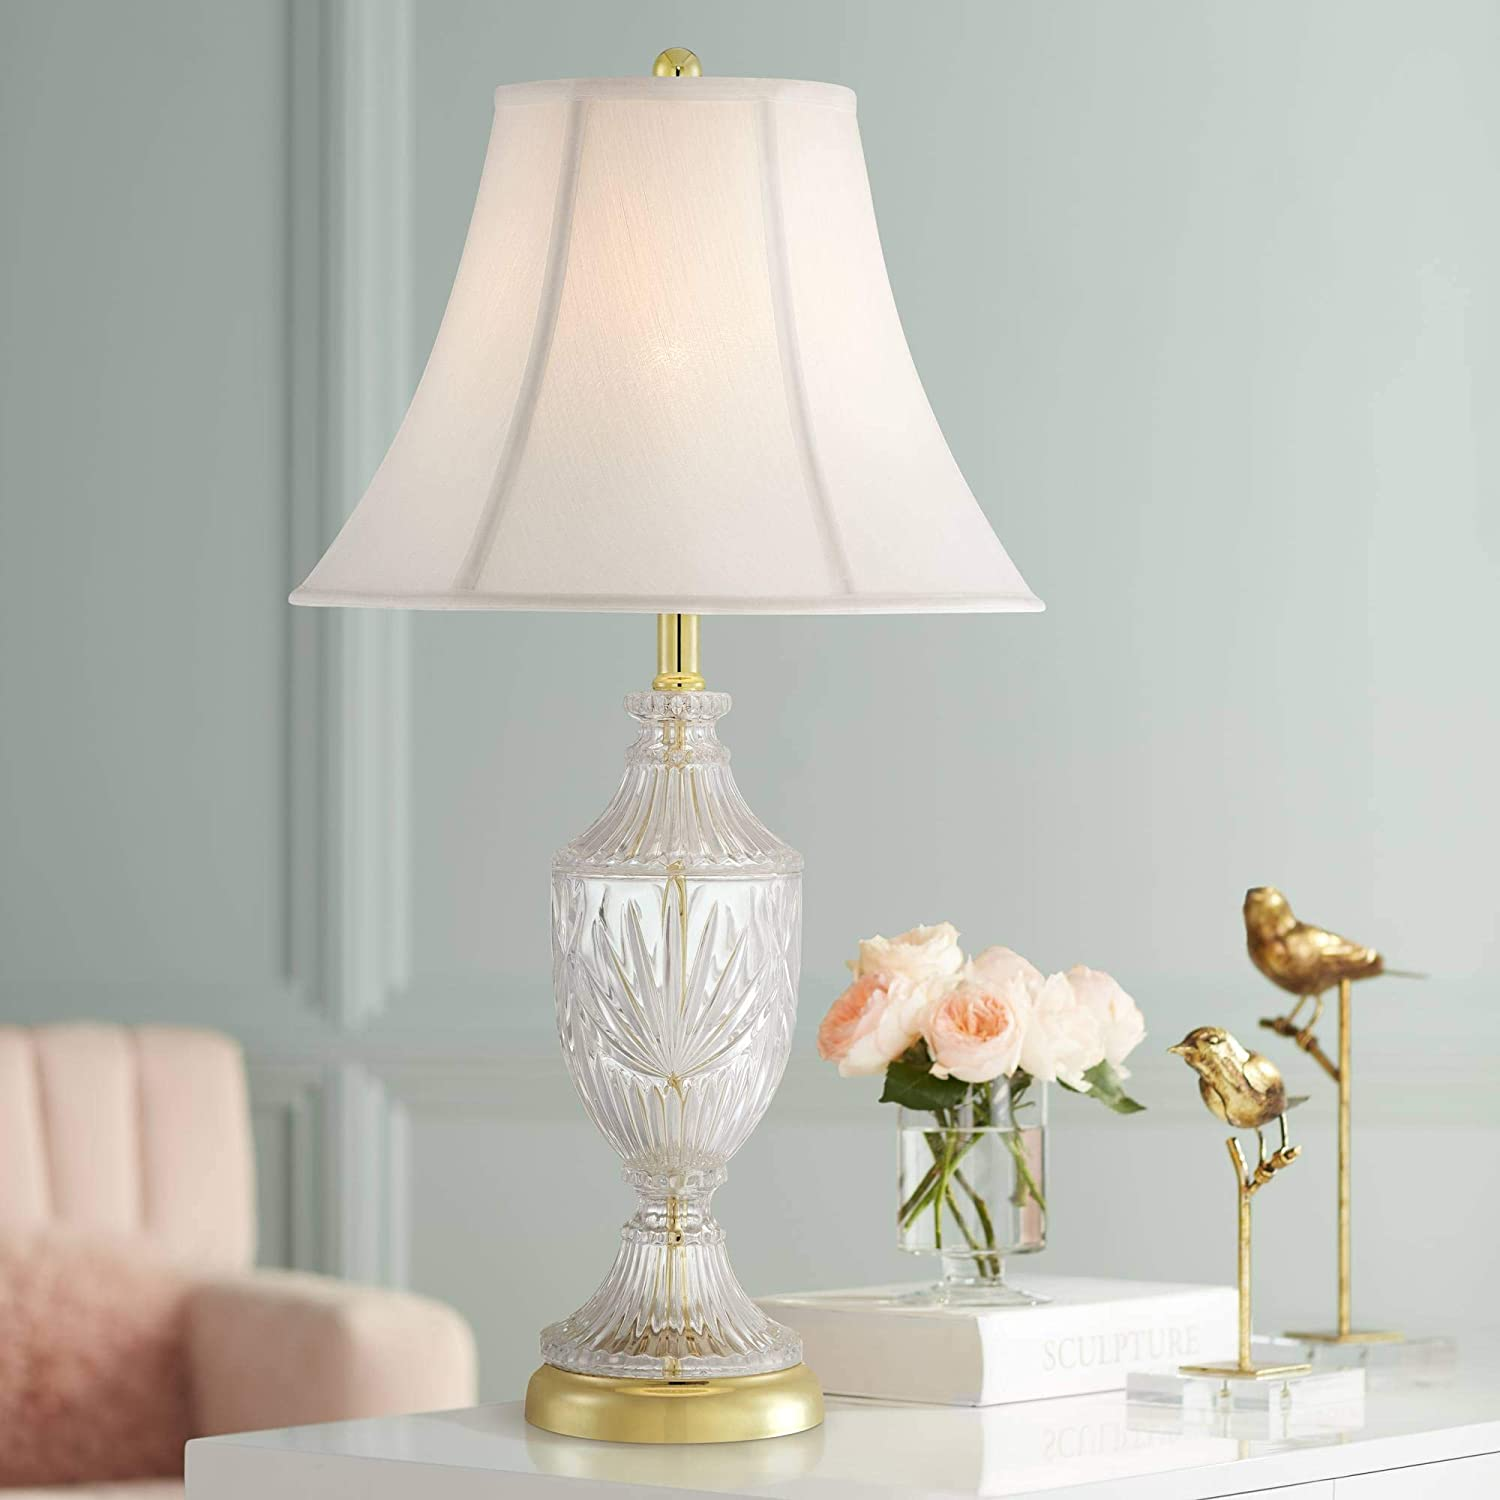 Traditional Glam Style Table Lamp Cut Glass Urn Brass Gold Metal Clear White Cream Bell Glass Shade Decor For Living Room Bedroom House Bedside Nightstand Home Office Family Regency Hill